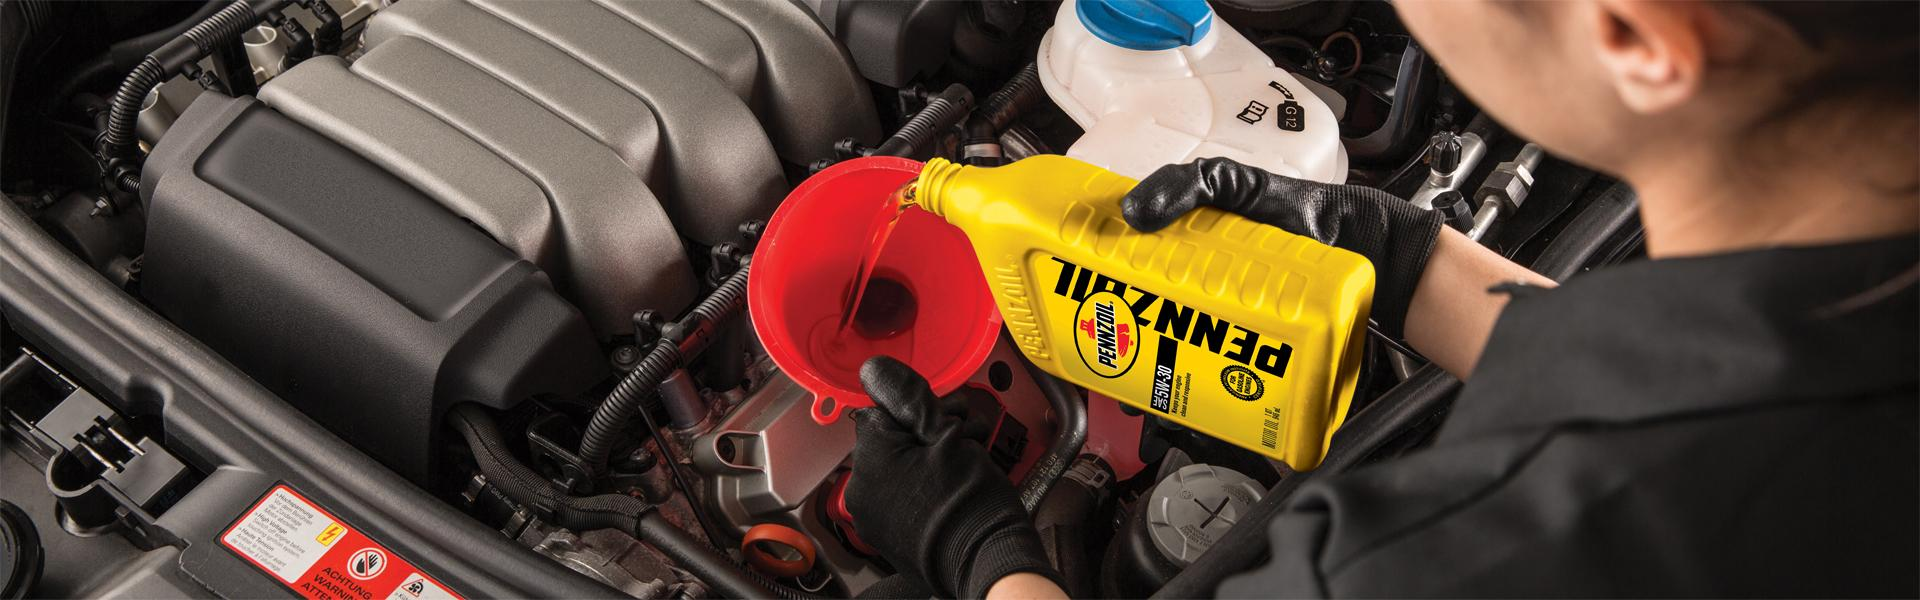 small resolution of jiffy lube signature service oil change